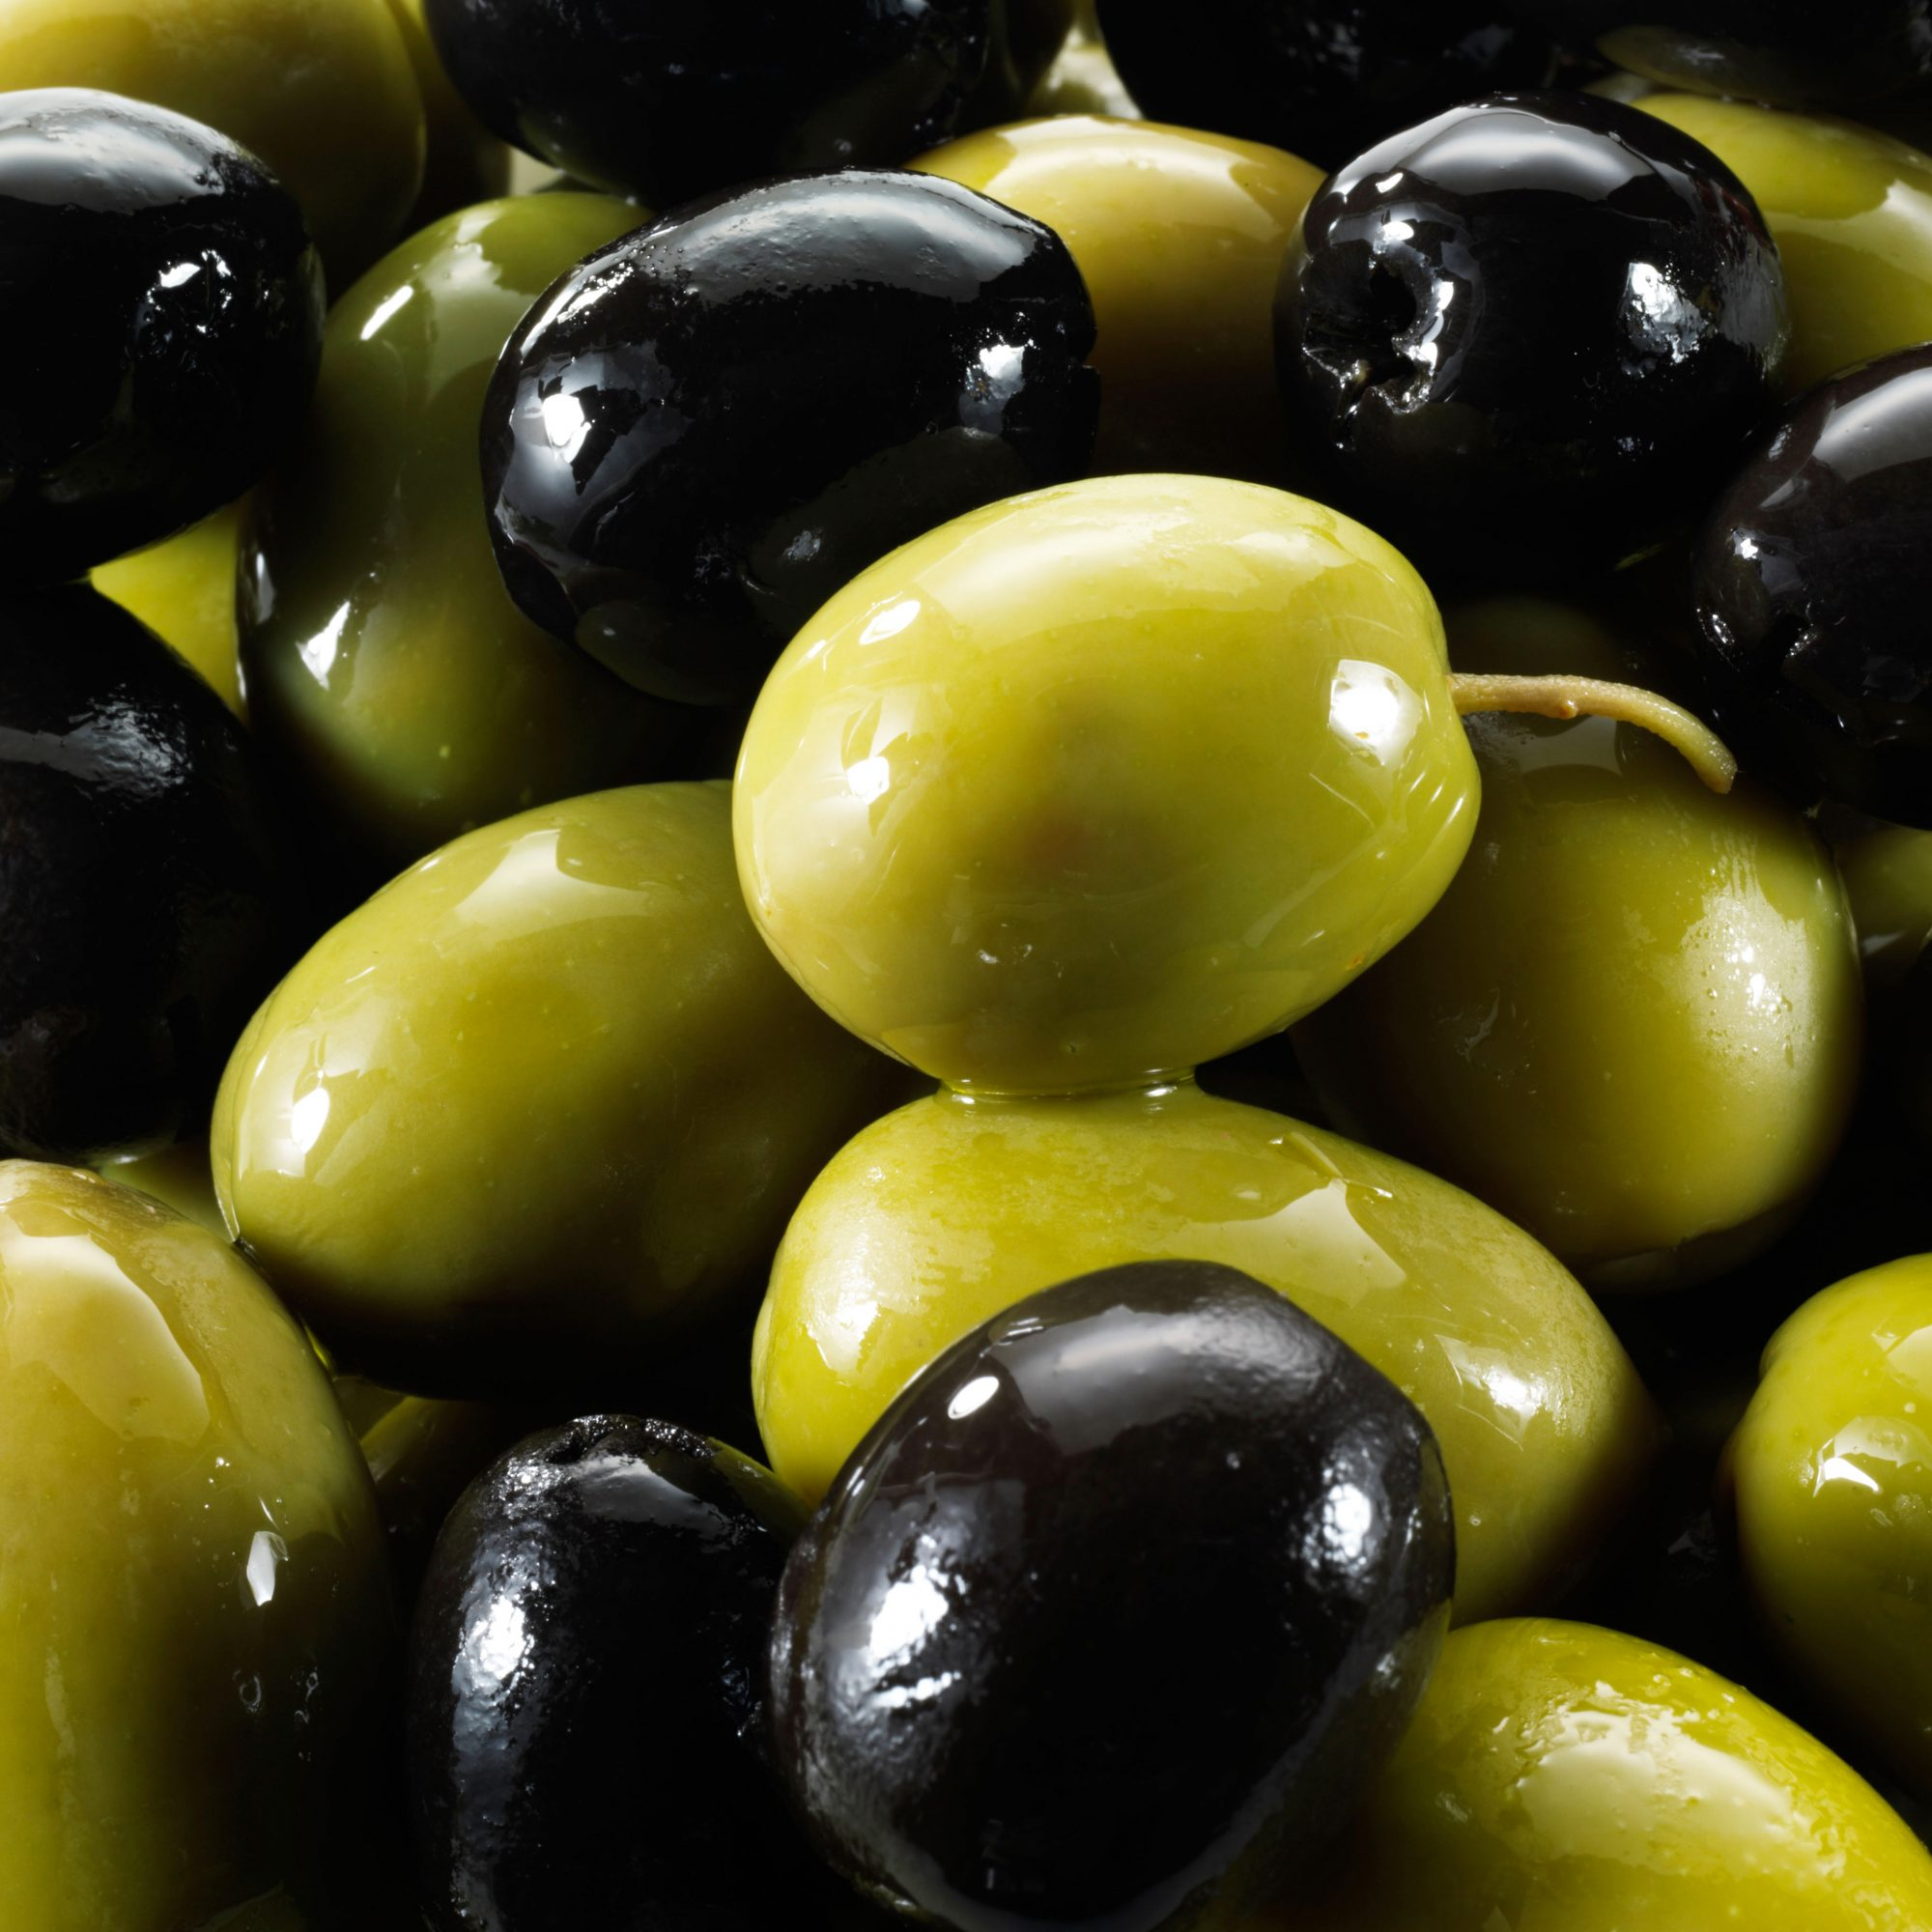 Counterfeit Olives